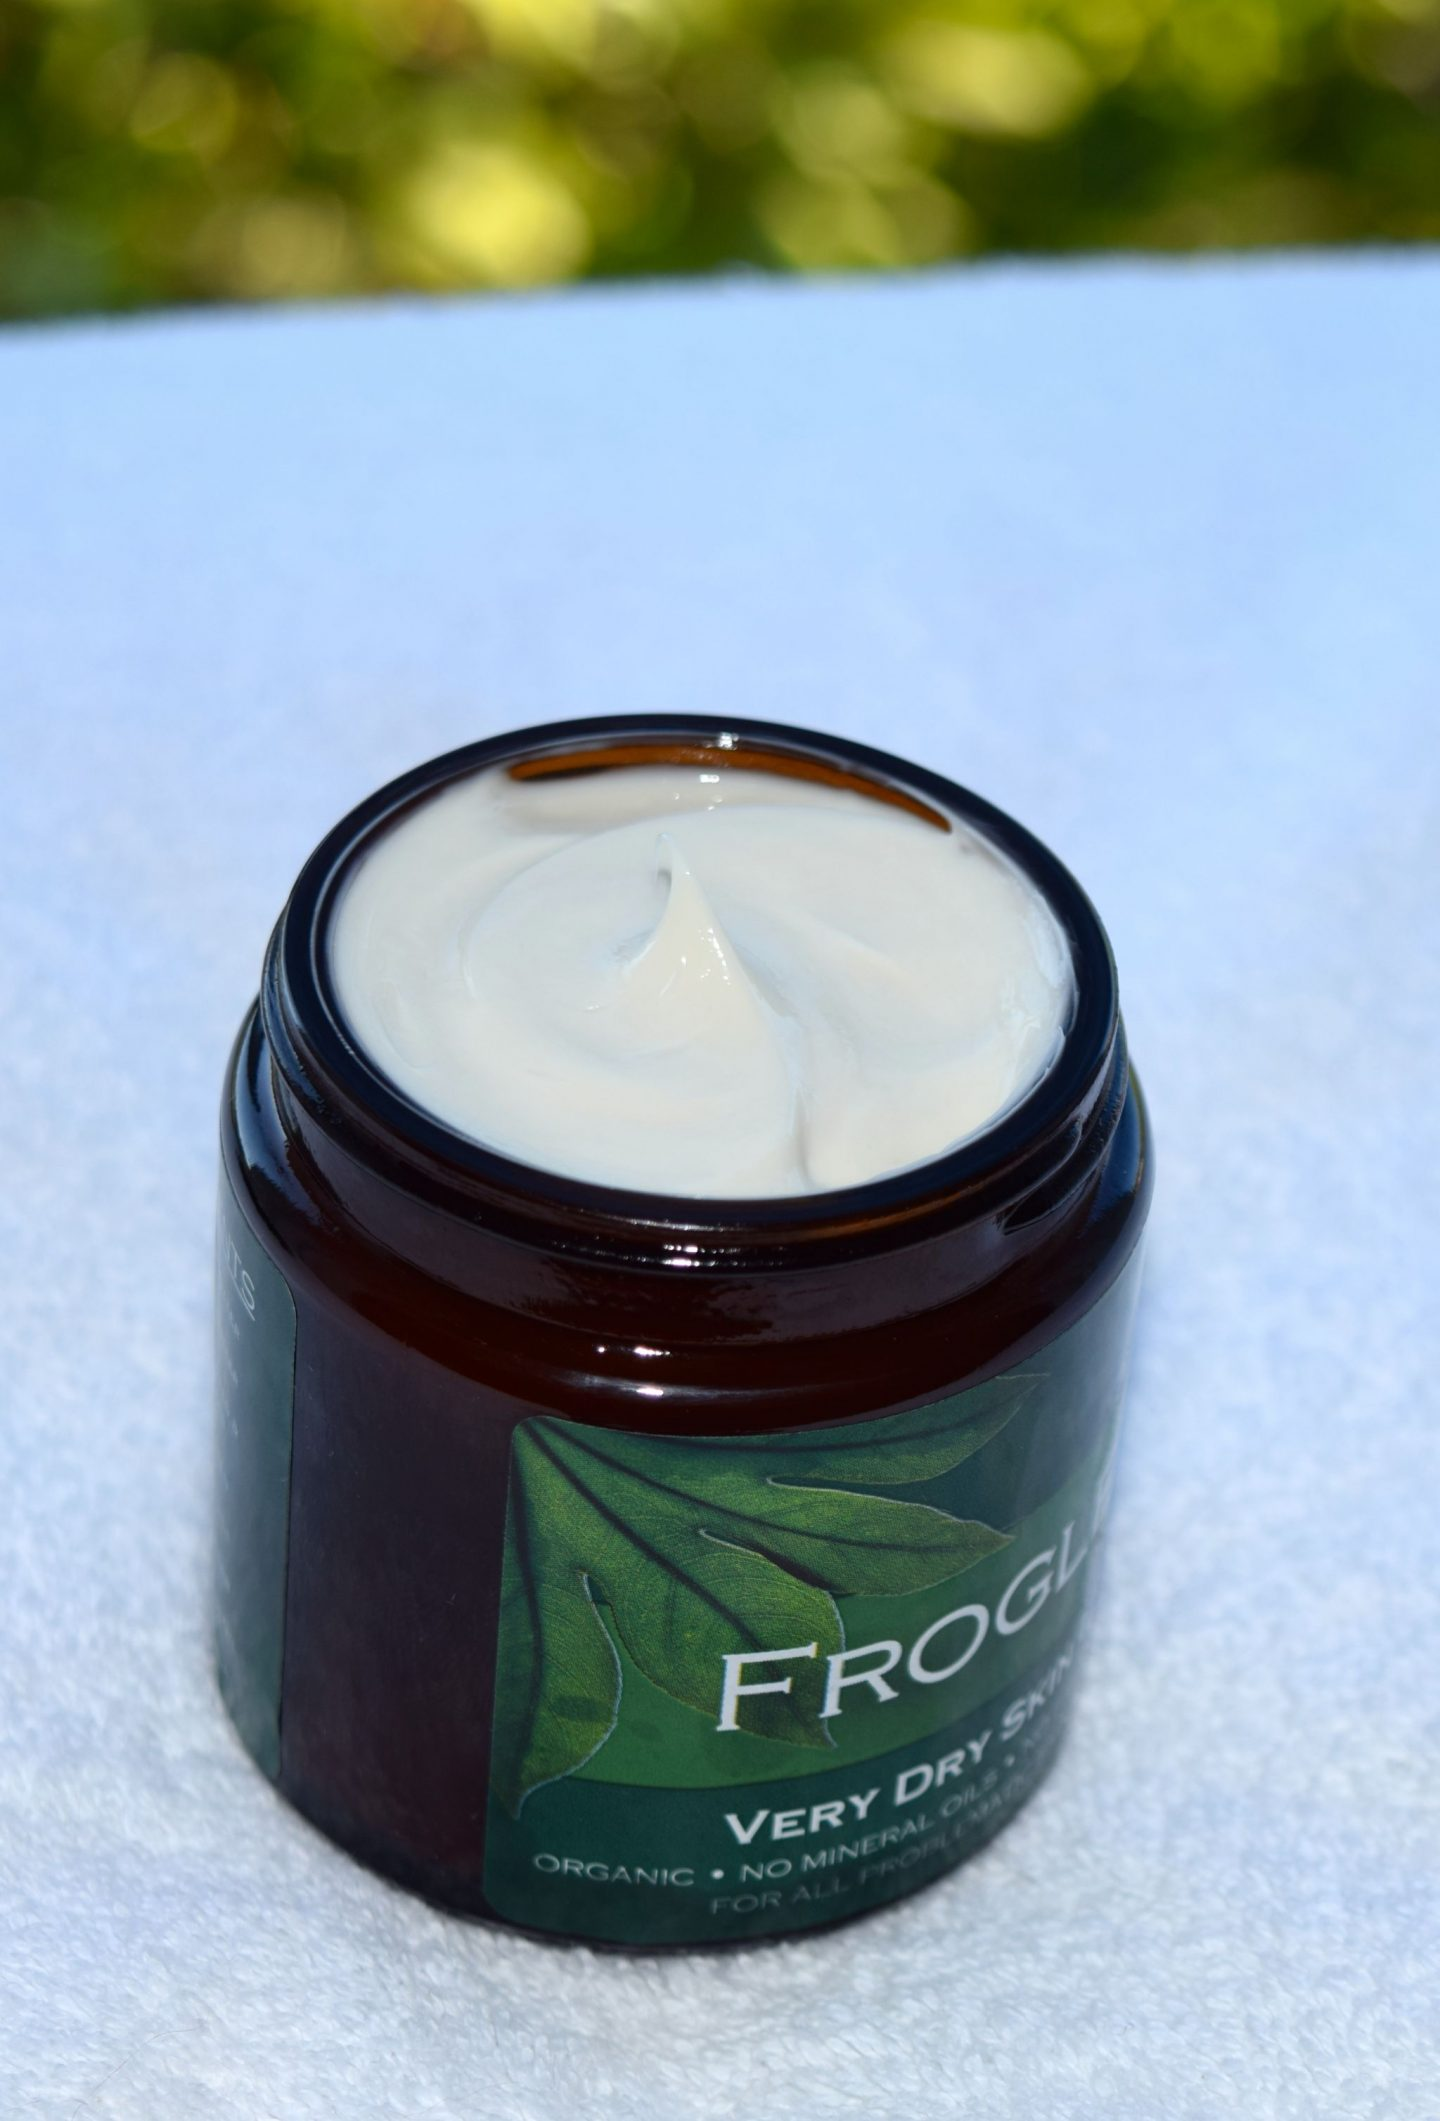 Frogleaf Very Dry Skin Cream 1